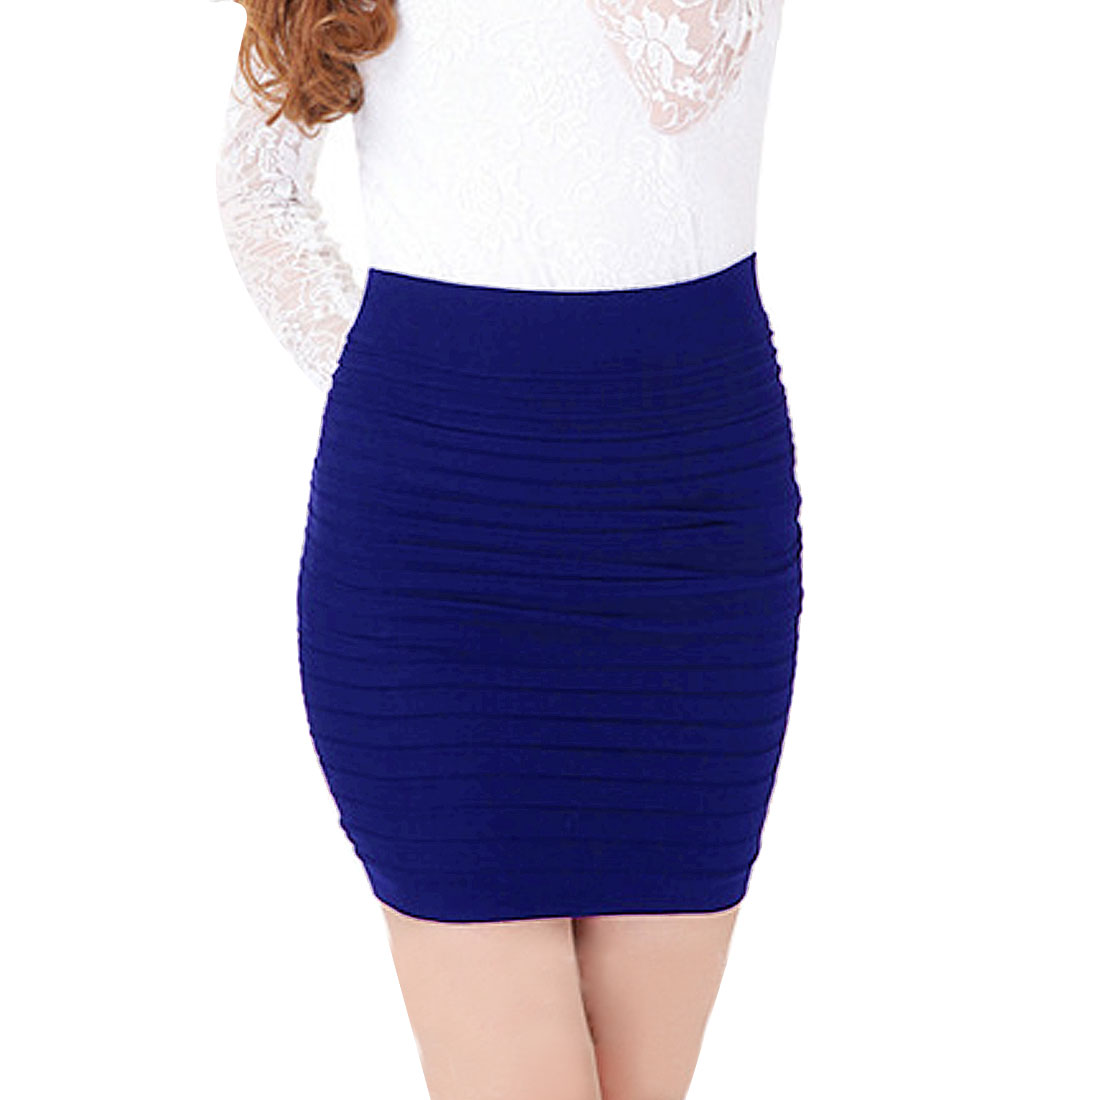 Hip Hugging Layered Stretch Mini Skirt Blue XS for Woman